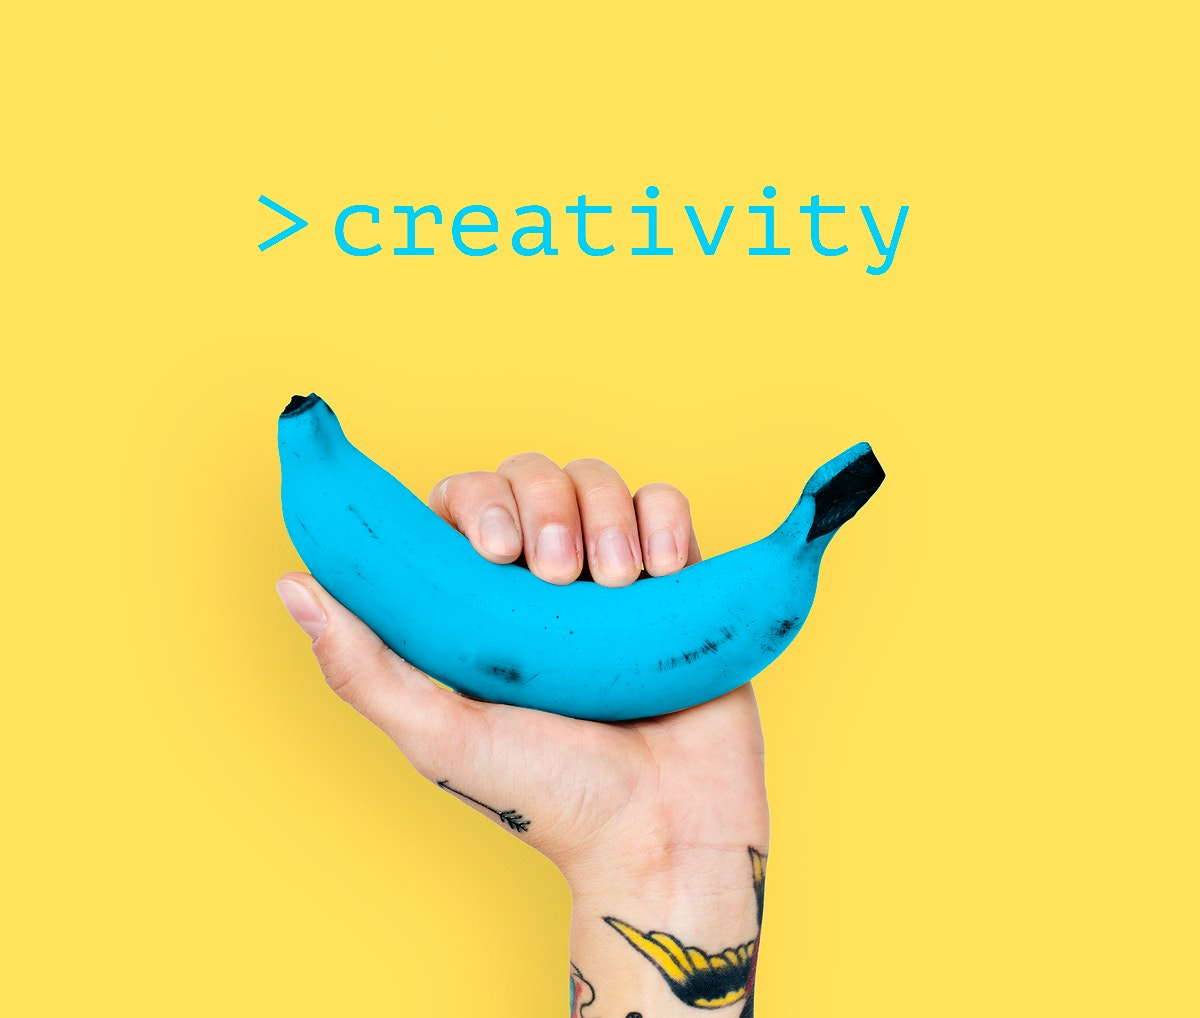 Hand with tattoo lifting blue banana with yellow background